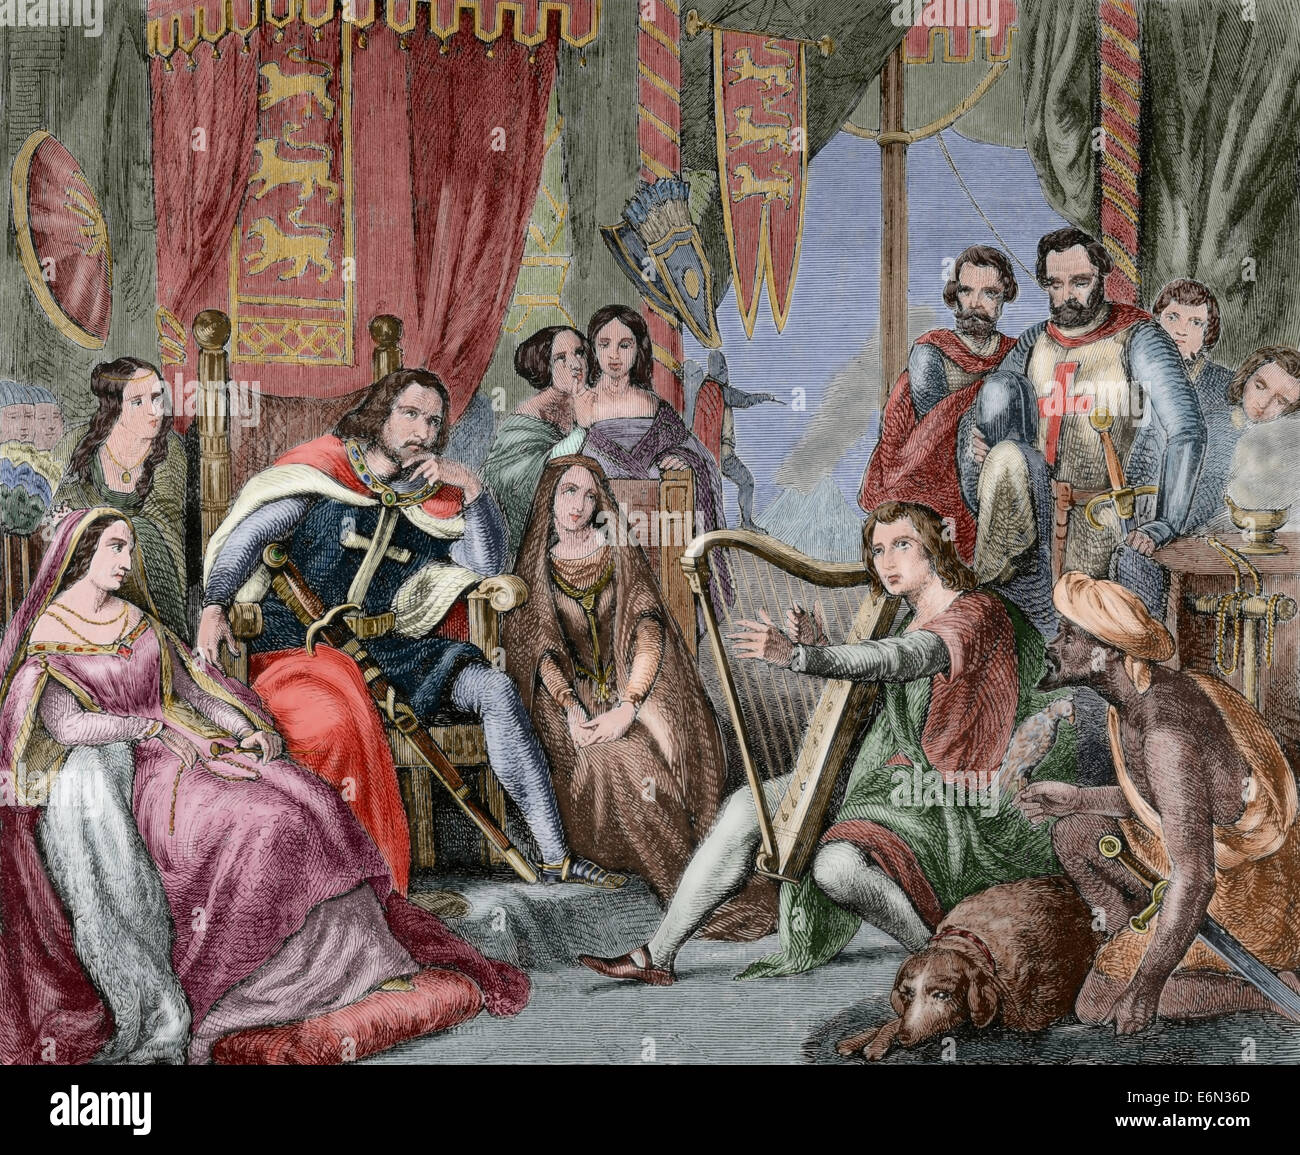 Richard I of England (1157-1199), known as Richard the Lionheart. King of England. Engraving. Colored. Stock Photo